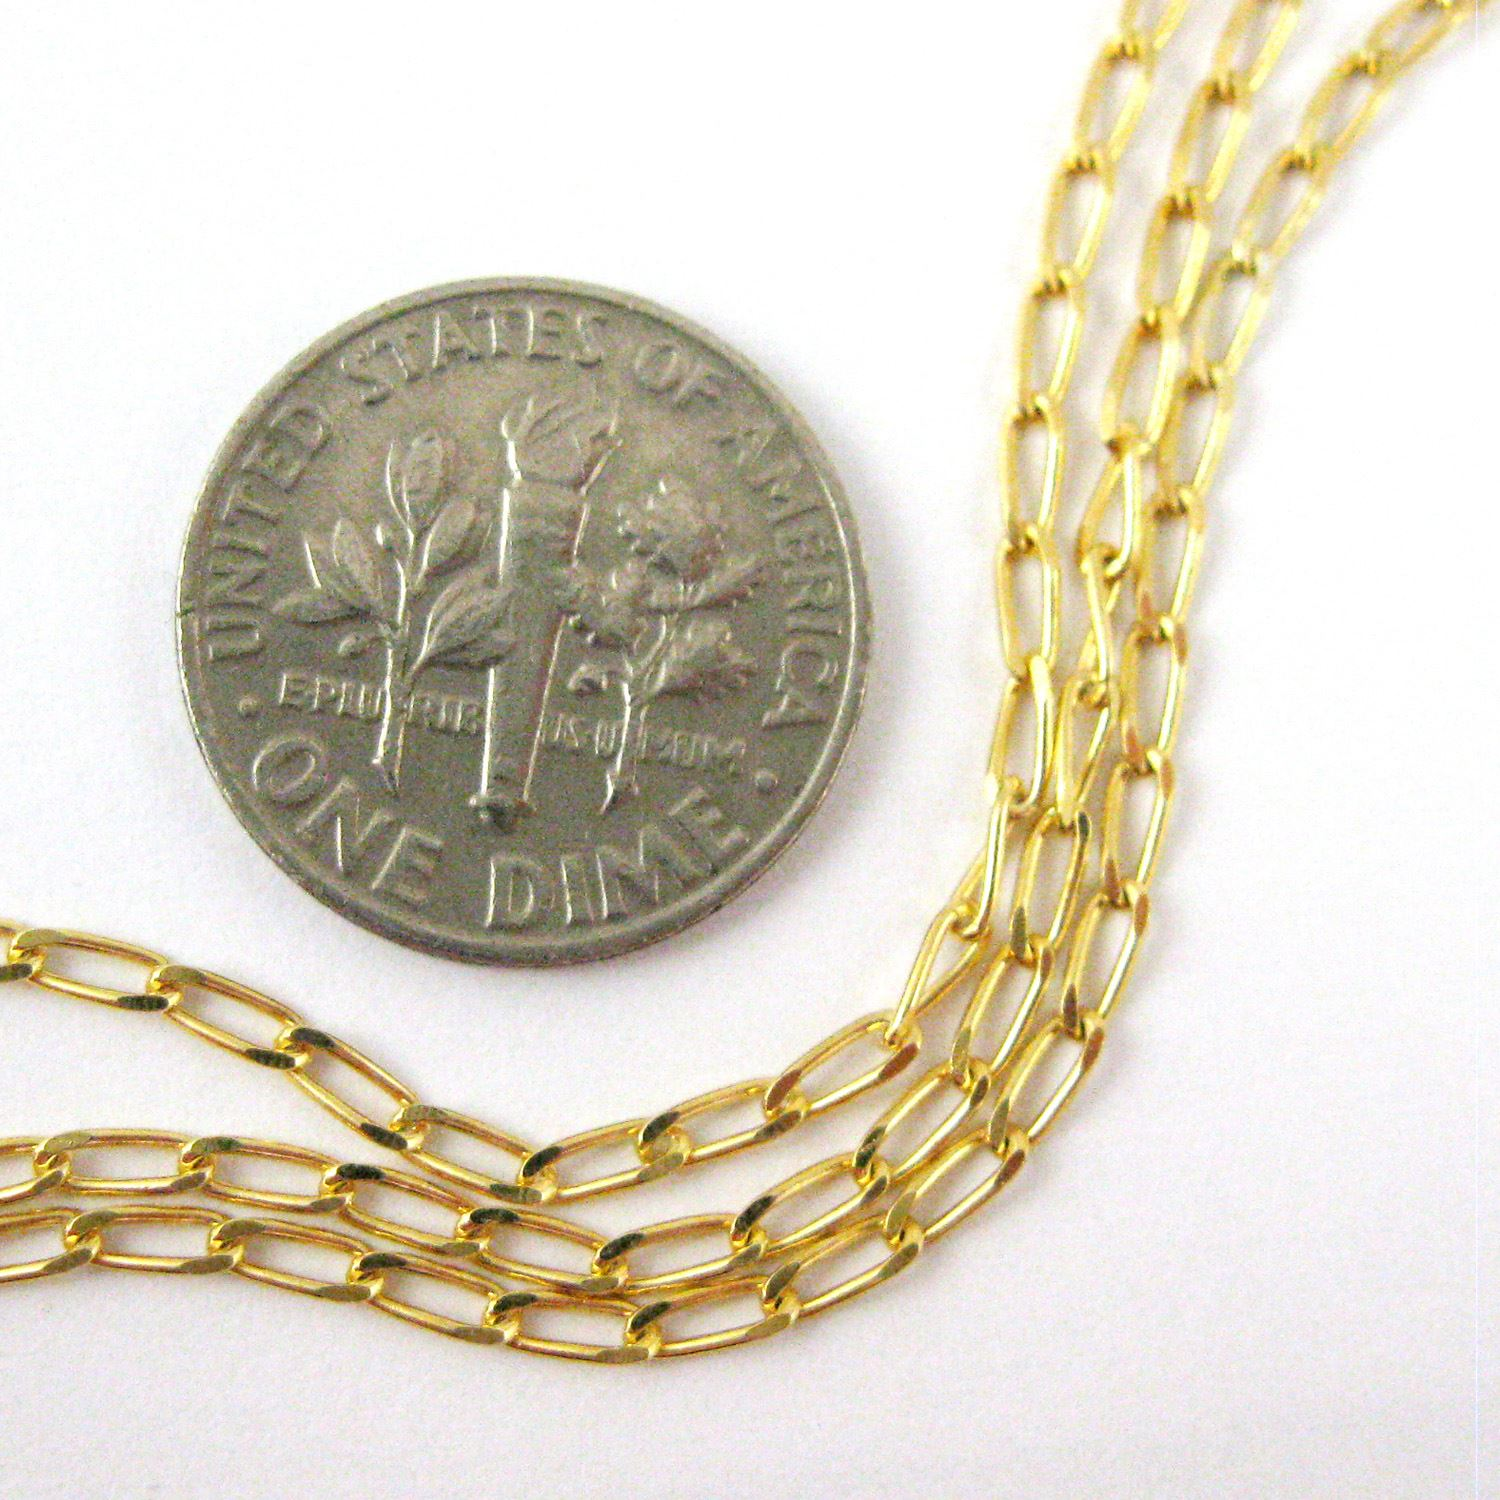 22K Gold Plated over Sterling Silver Chain- Vermeil Chain, Gold Plated Bulk Chain - 4mm Diamond Cut Curb Chain - Unfinished Bulk Chain (sold per foot)